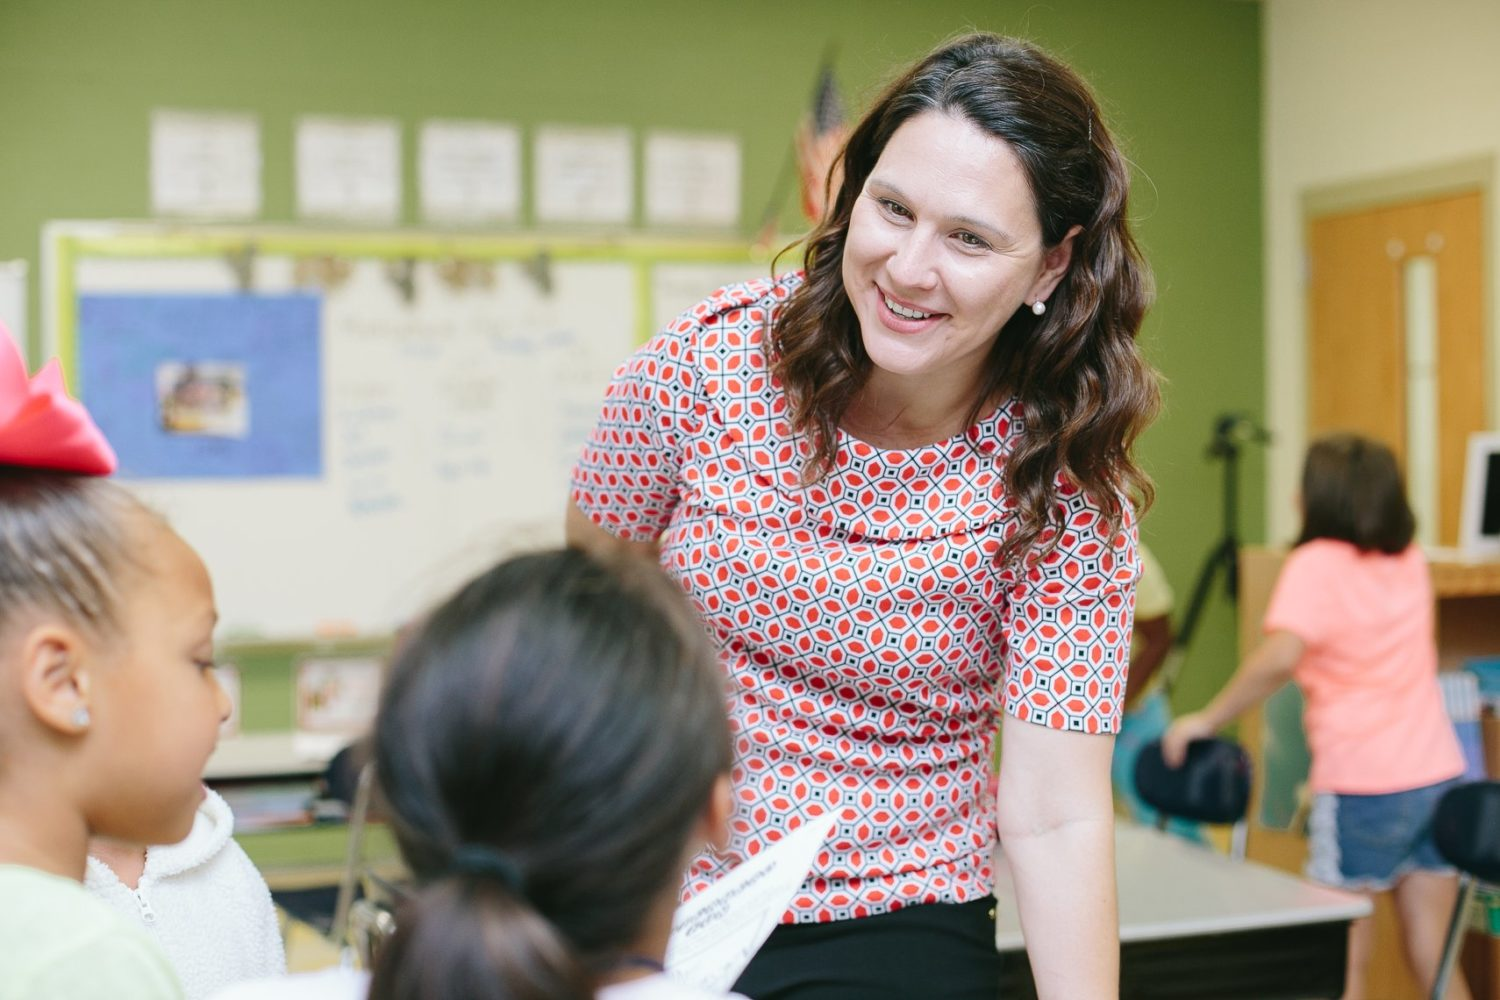 Mariah Morris, North Carolina's 2019 Teacher of the Year, has developed online teaching materials that she's sharing with others to help students learn during the coronavirus pandemic. Photo courtesy of the Moore County Schools